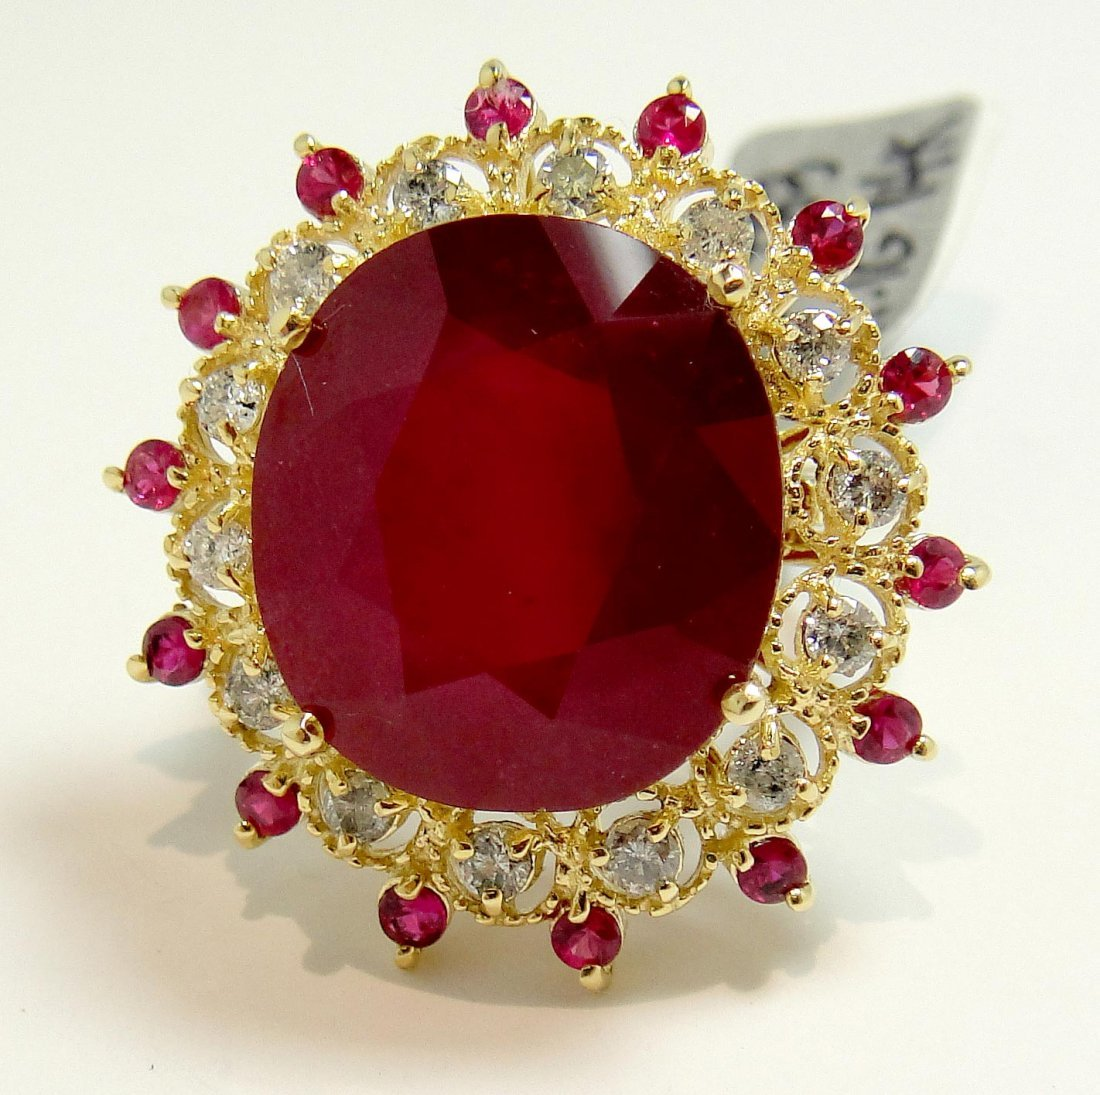 20.47ct Ruby & 0.57ct Diamond 14KT Gold Ring